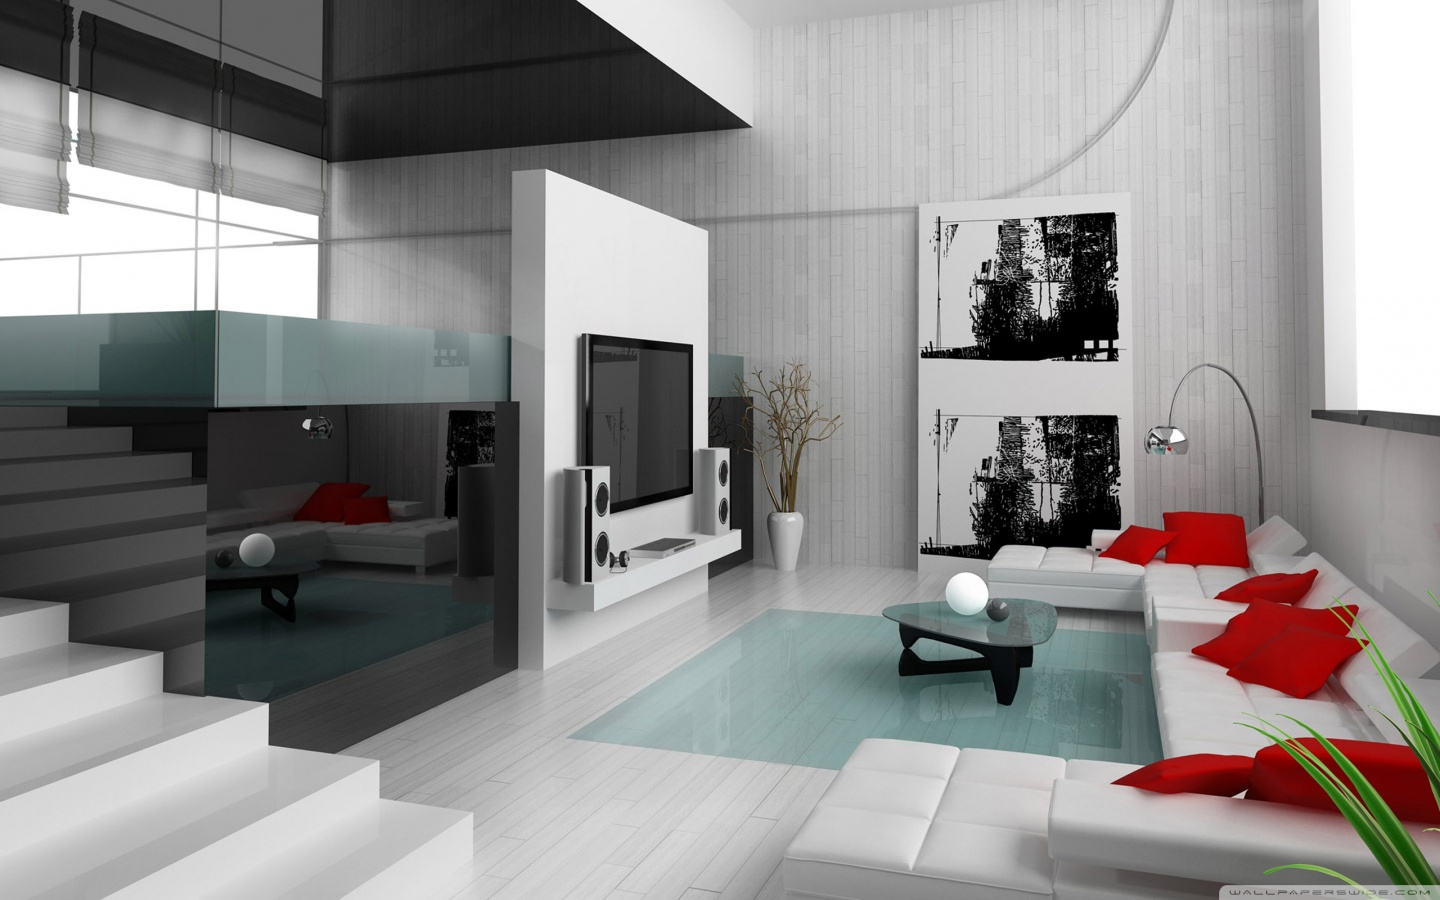 Minimalist interior design imagination art architecture for Minimalist art design